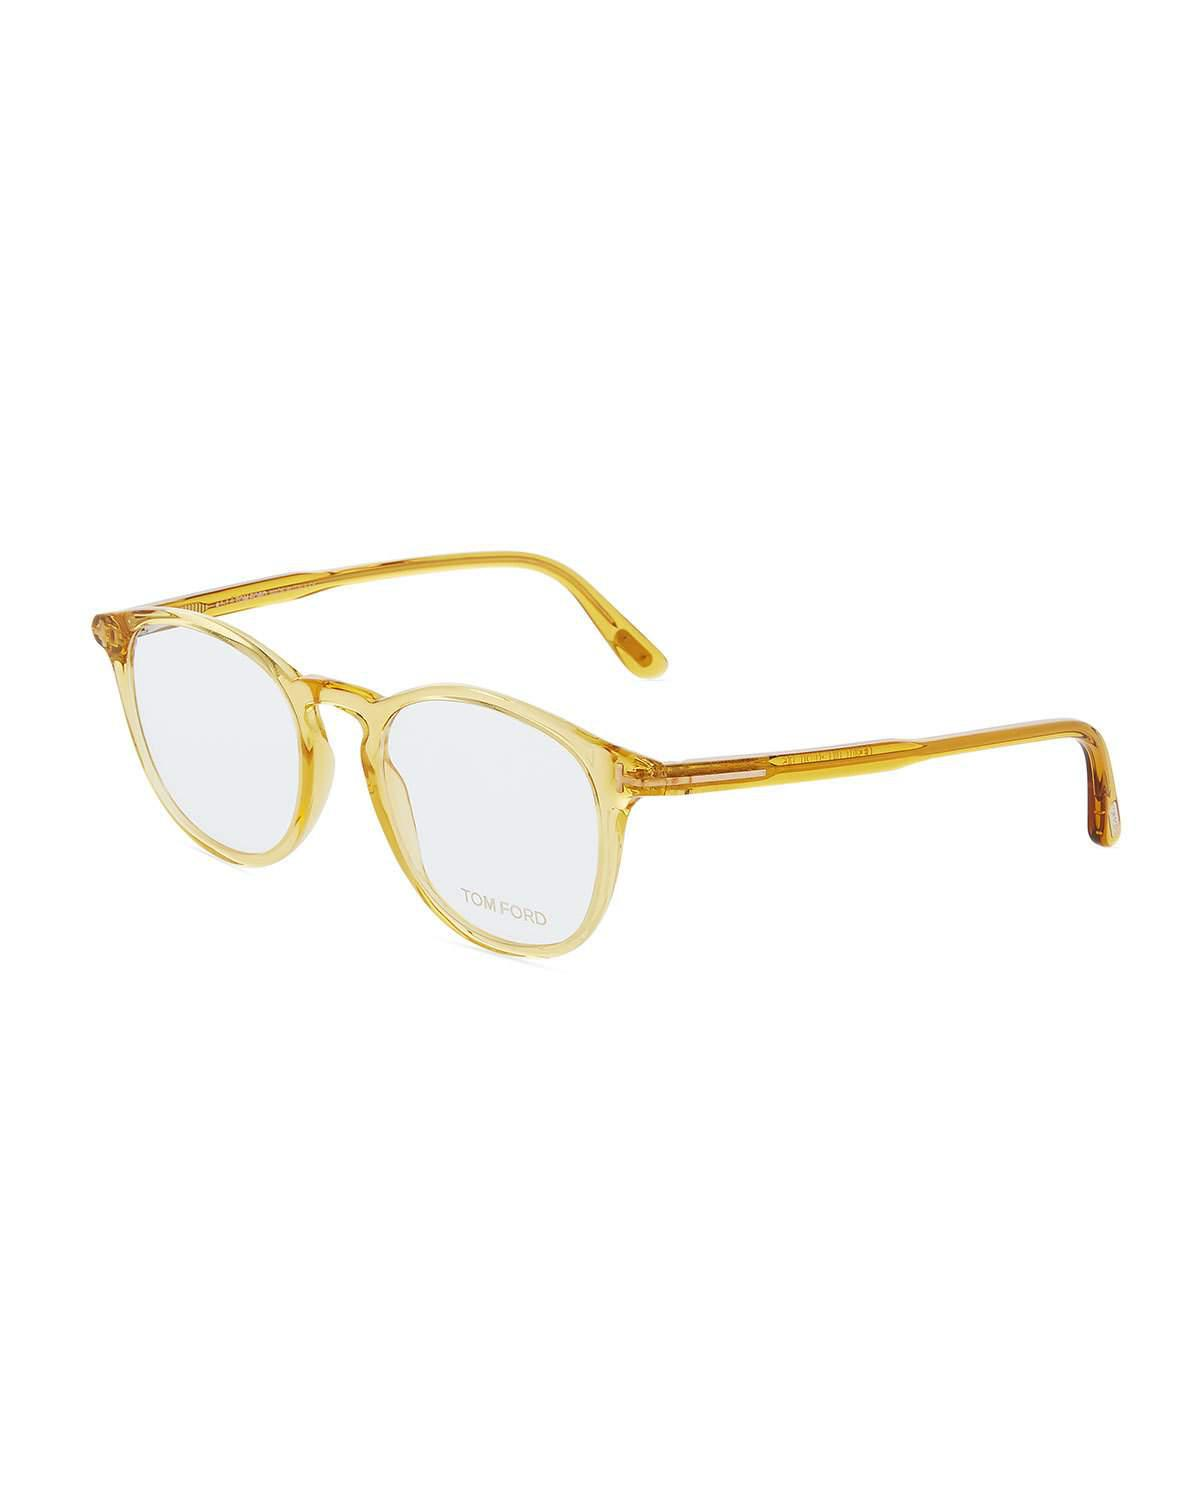 9b5c7bdfb2bc6 Tom Ford Round Translucent Acetate Optical Glasses In Yellow